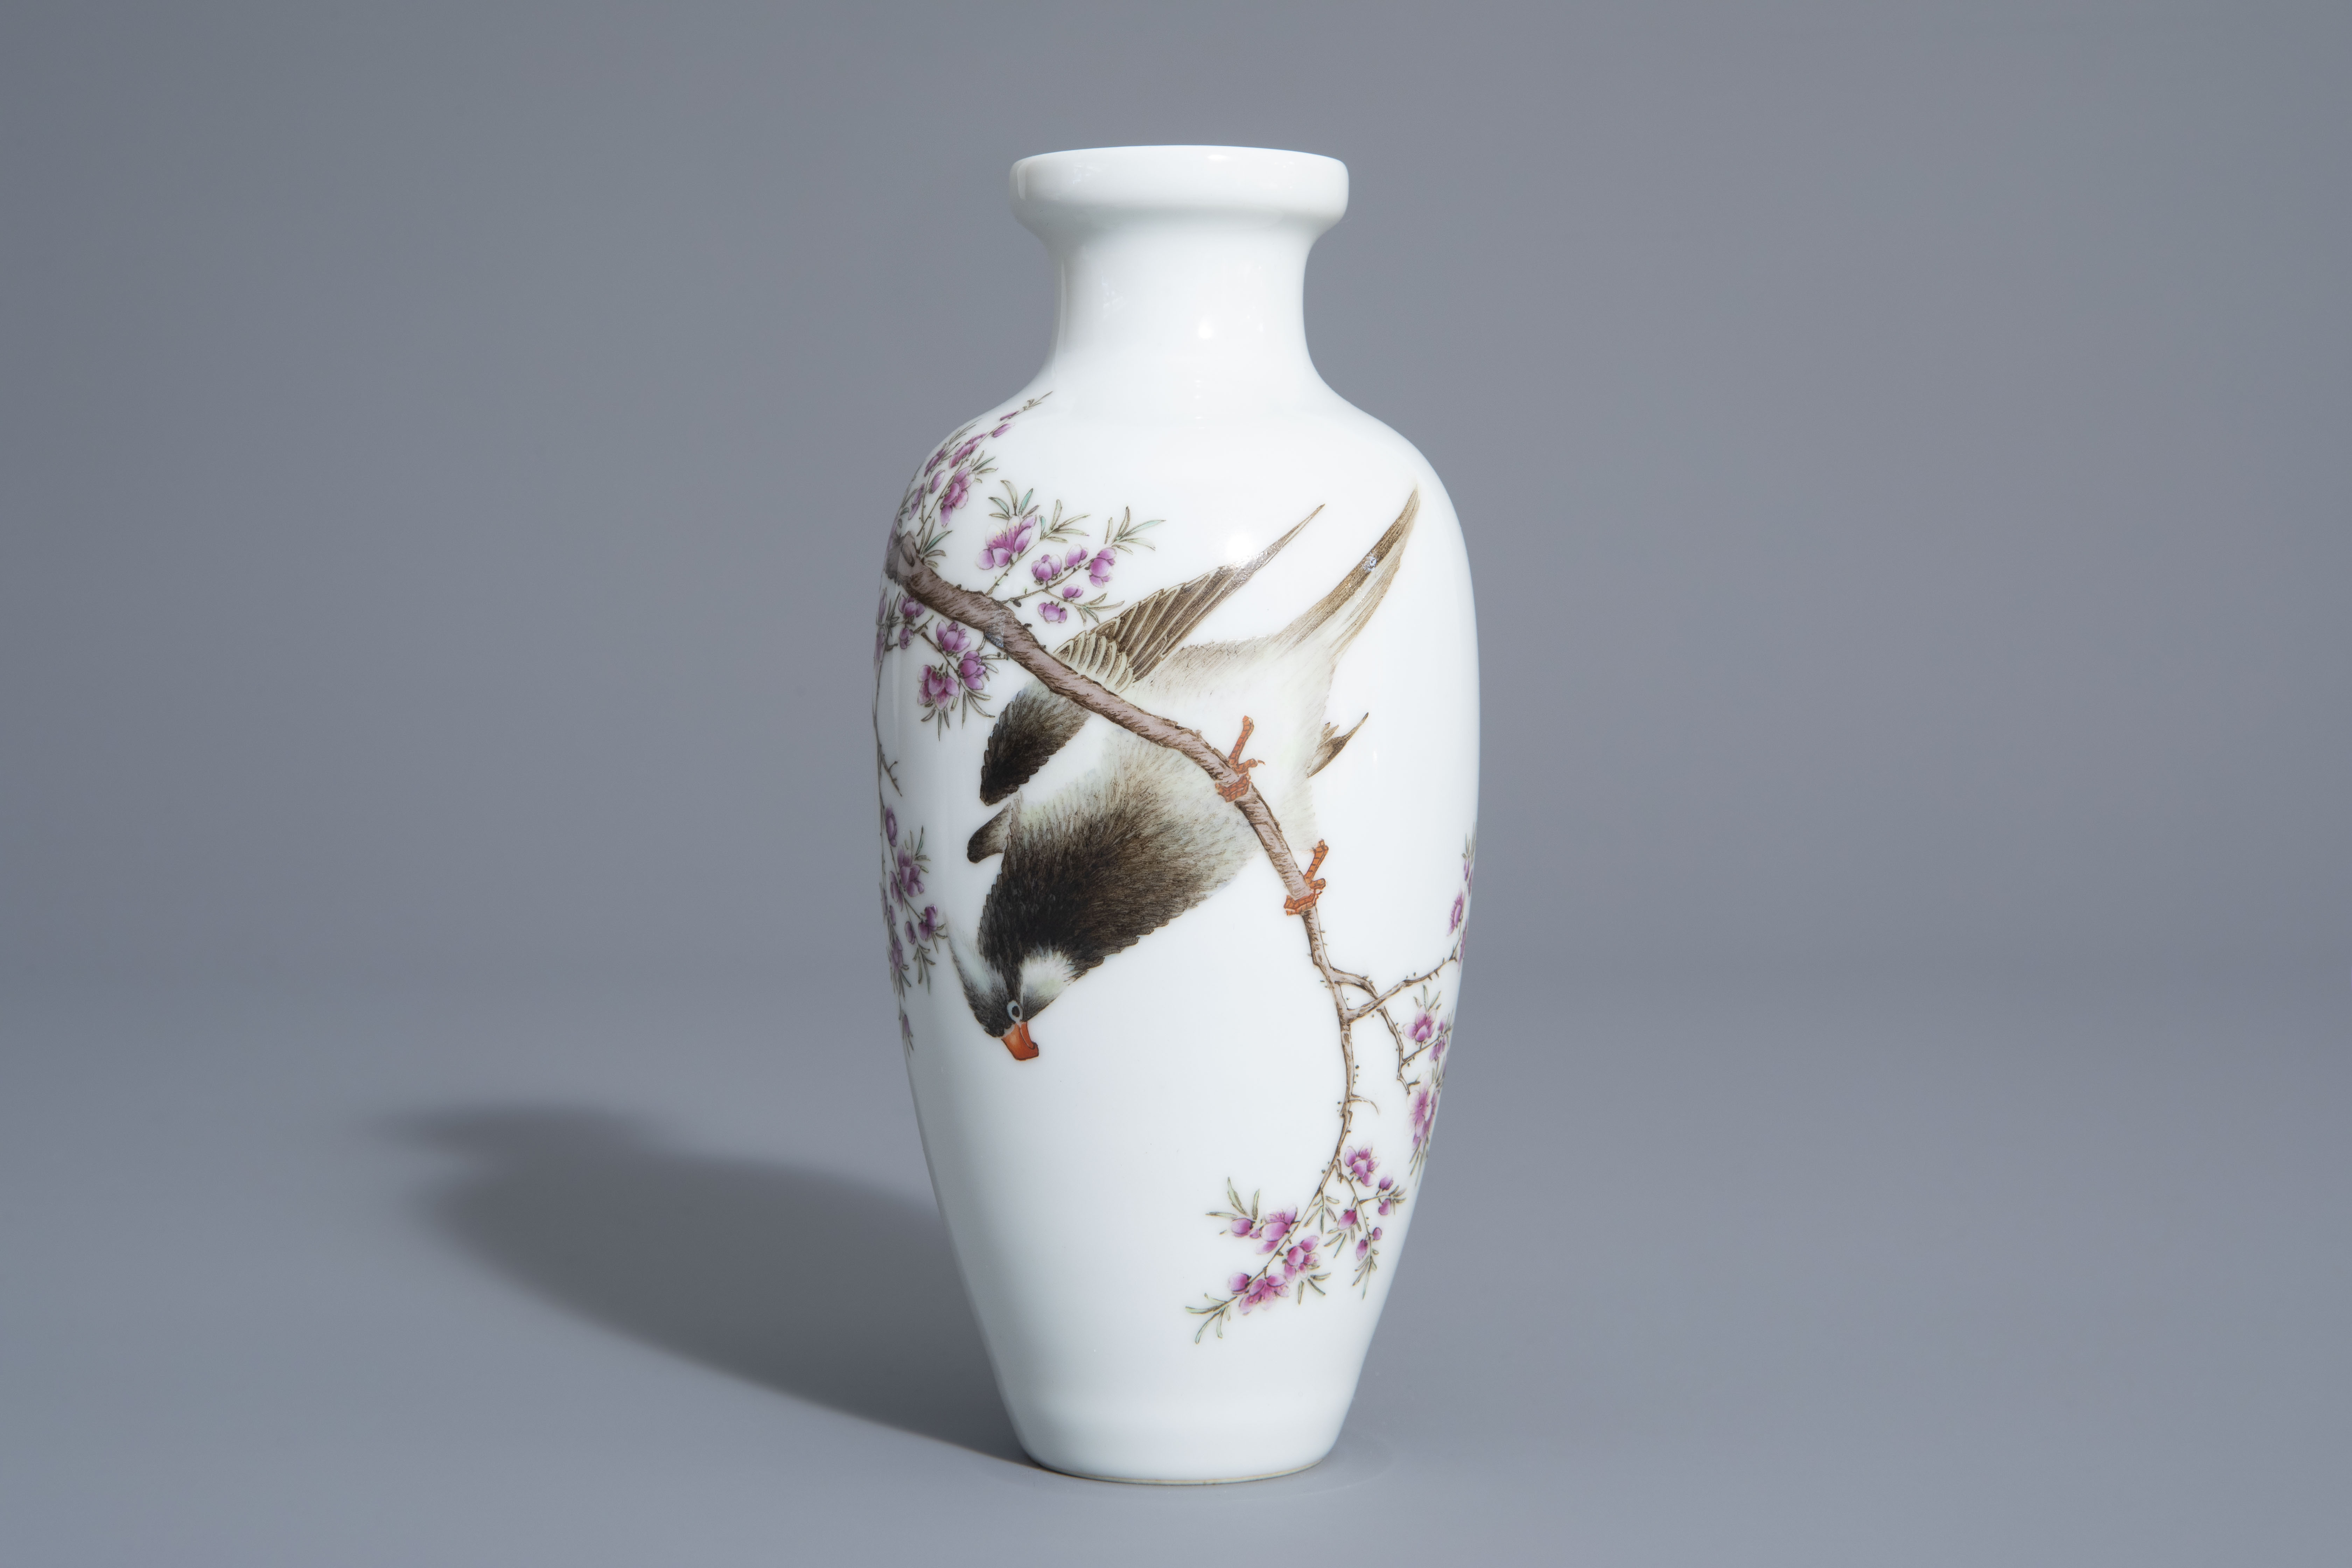 A Chinese famille rose vase with a bird among a flowering branch, 20th C. - Image 2 of 7